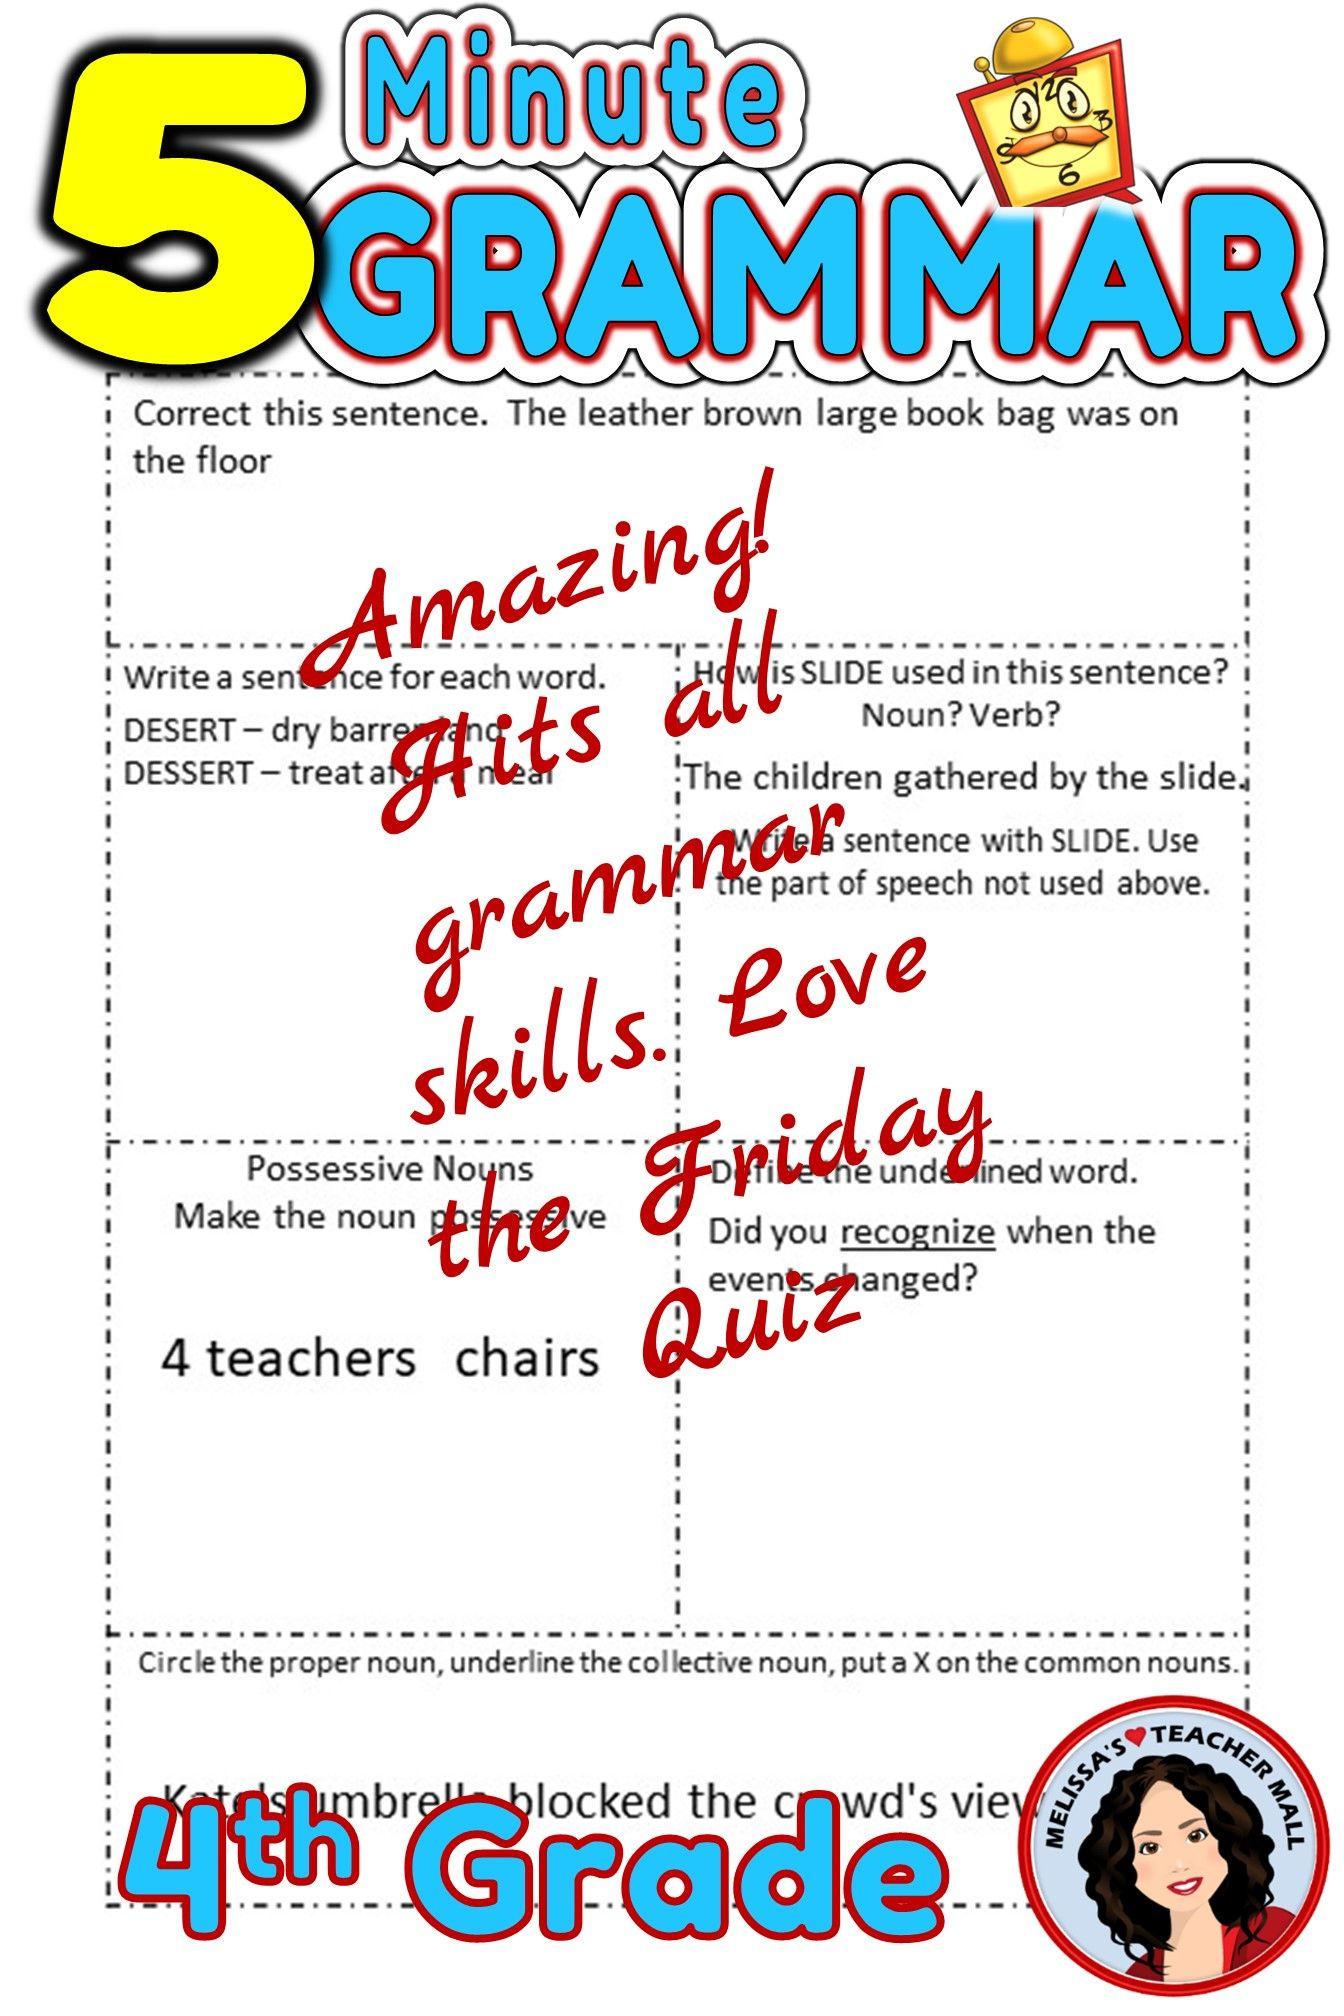 5 Minute Grammar Daily Grammar Worksheets 4th GRADE Practice and